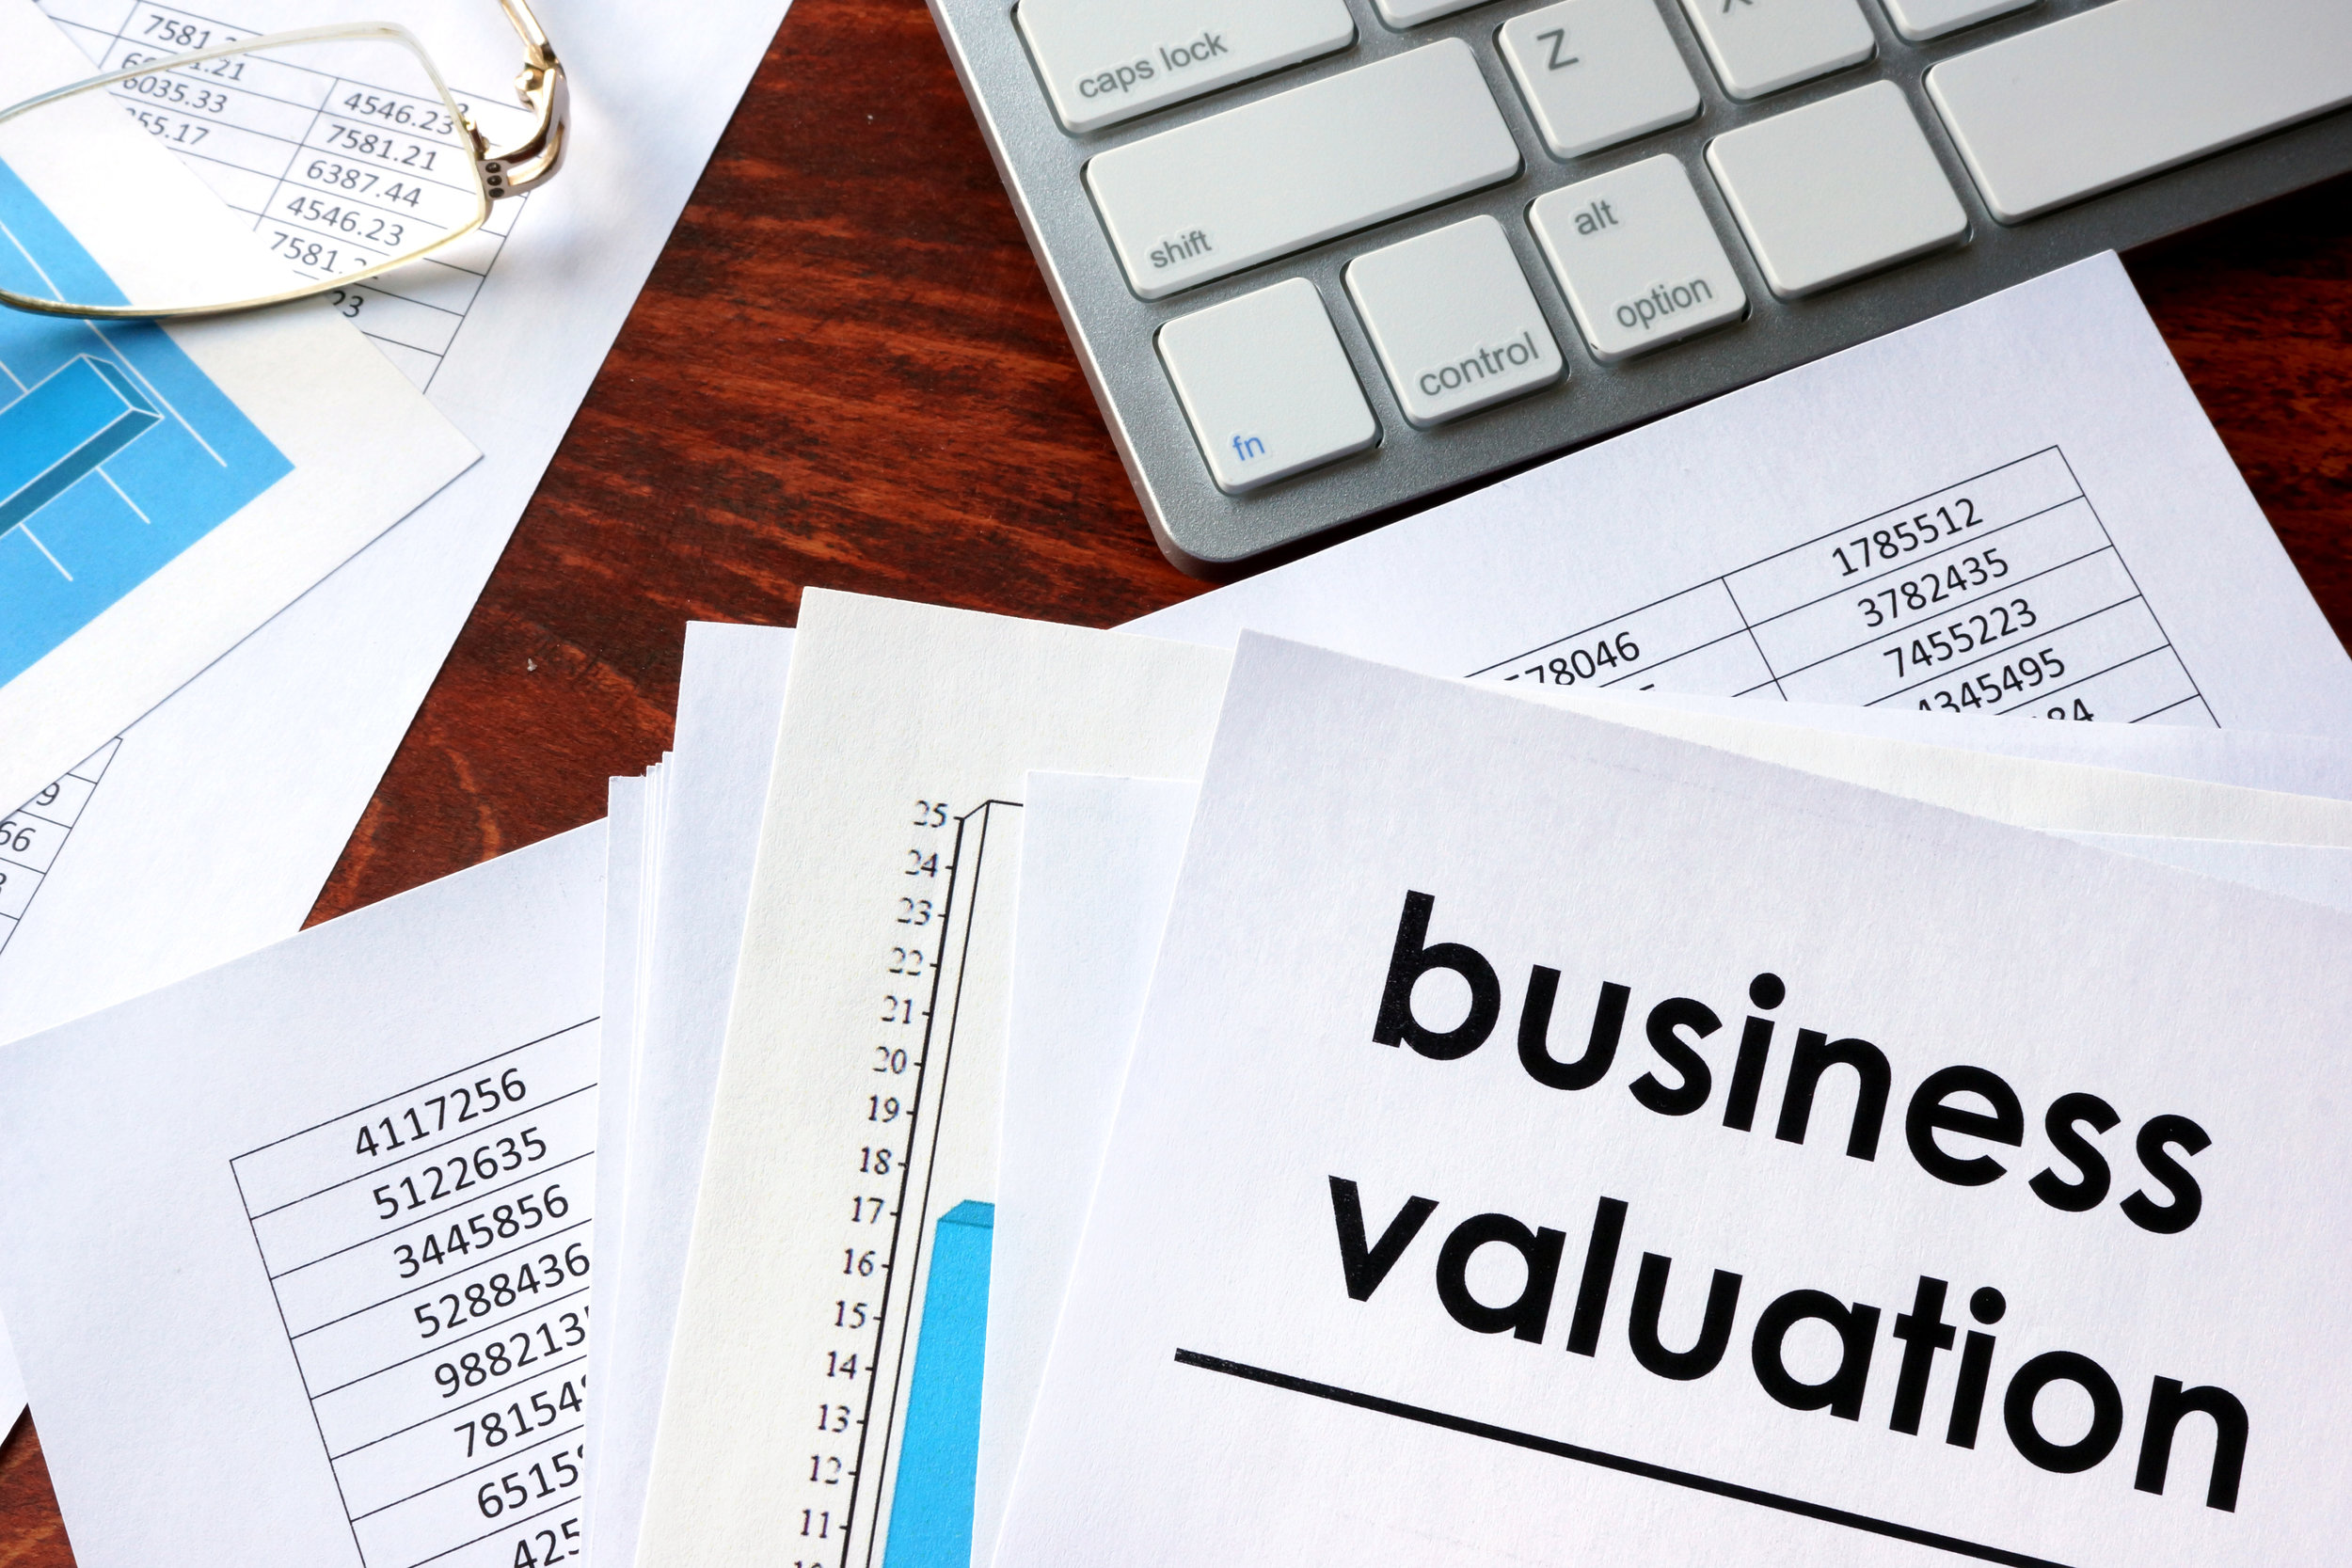 Valuation Services - Tax Reporting/ Gift and Estate Tax Planning Purposes;Financial Reporting/ Intangible Assets Valuations;Transaction Support/ Selling a Business;409A Valuations and ESOPs;Litigation Consulting/ Expert Witness;SBA/ Bank Financing Requirements.